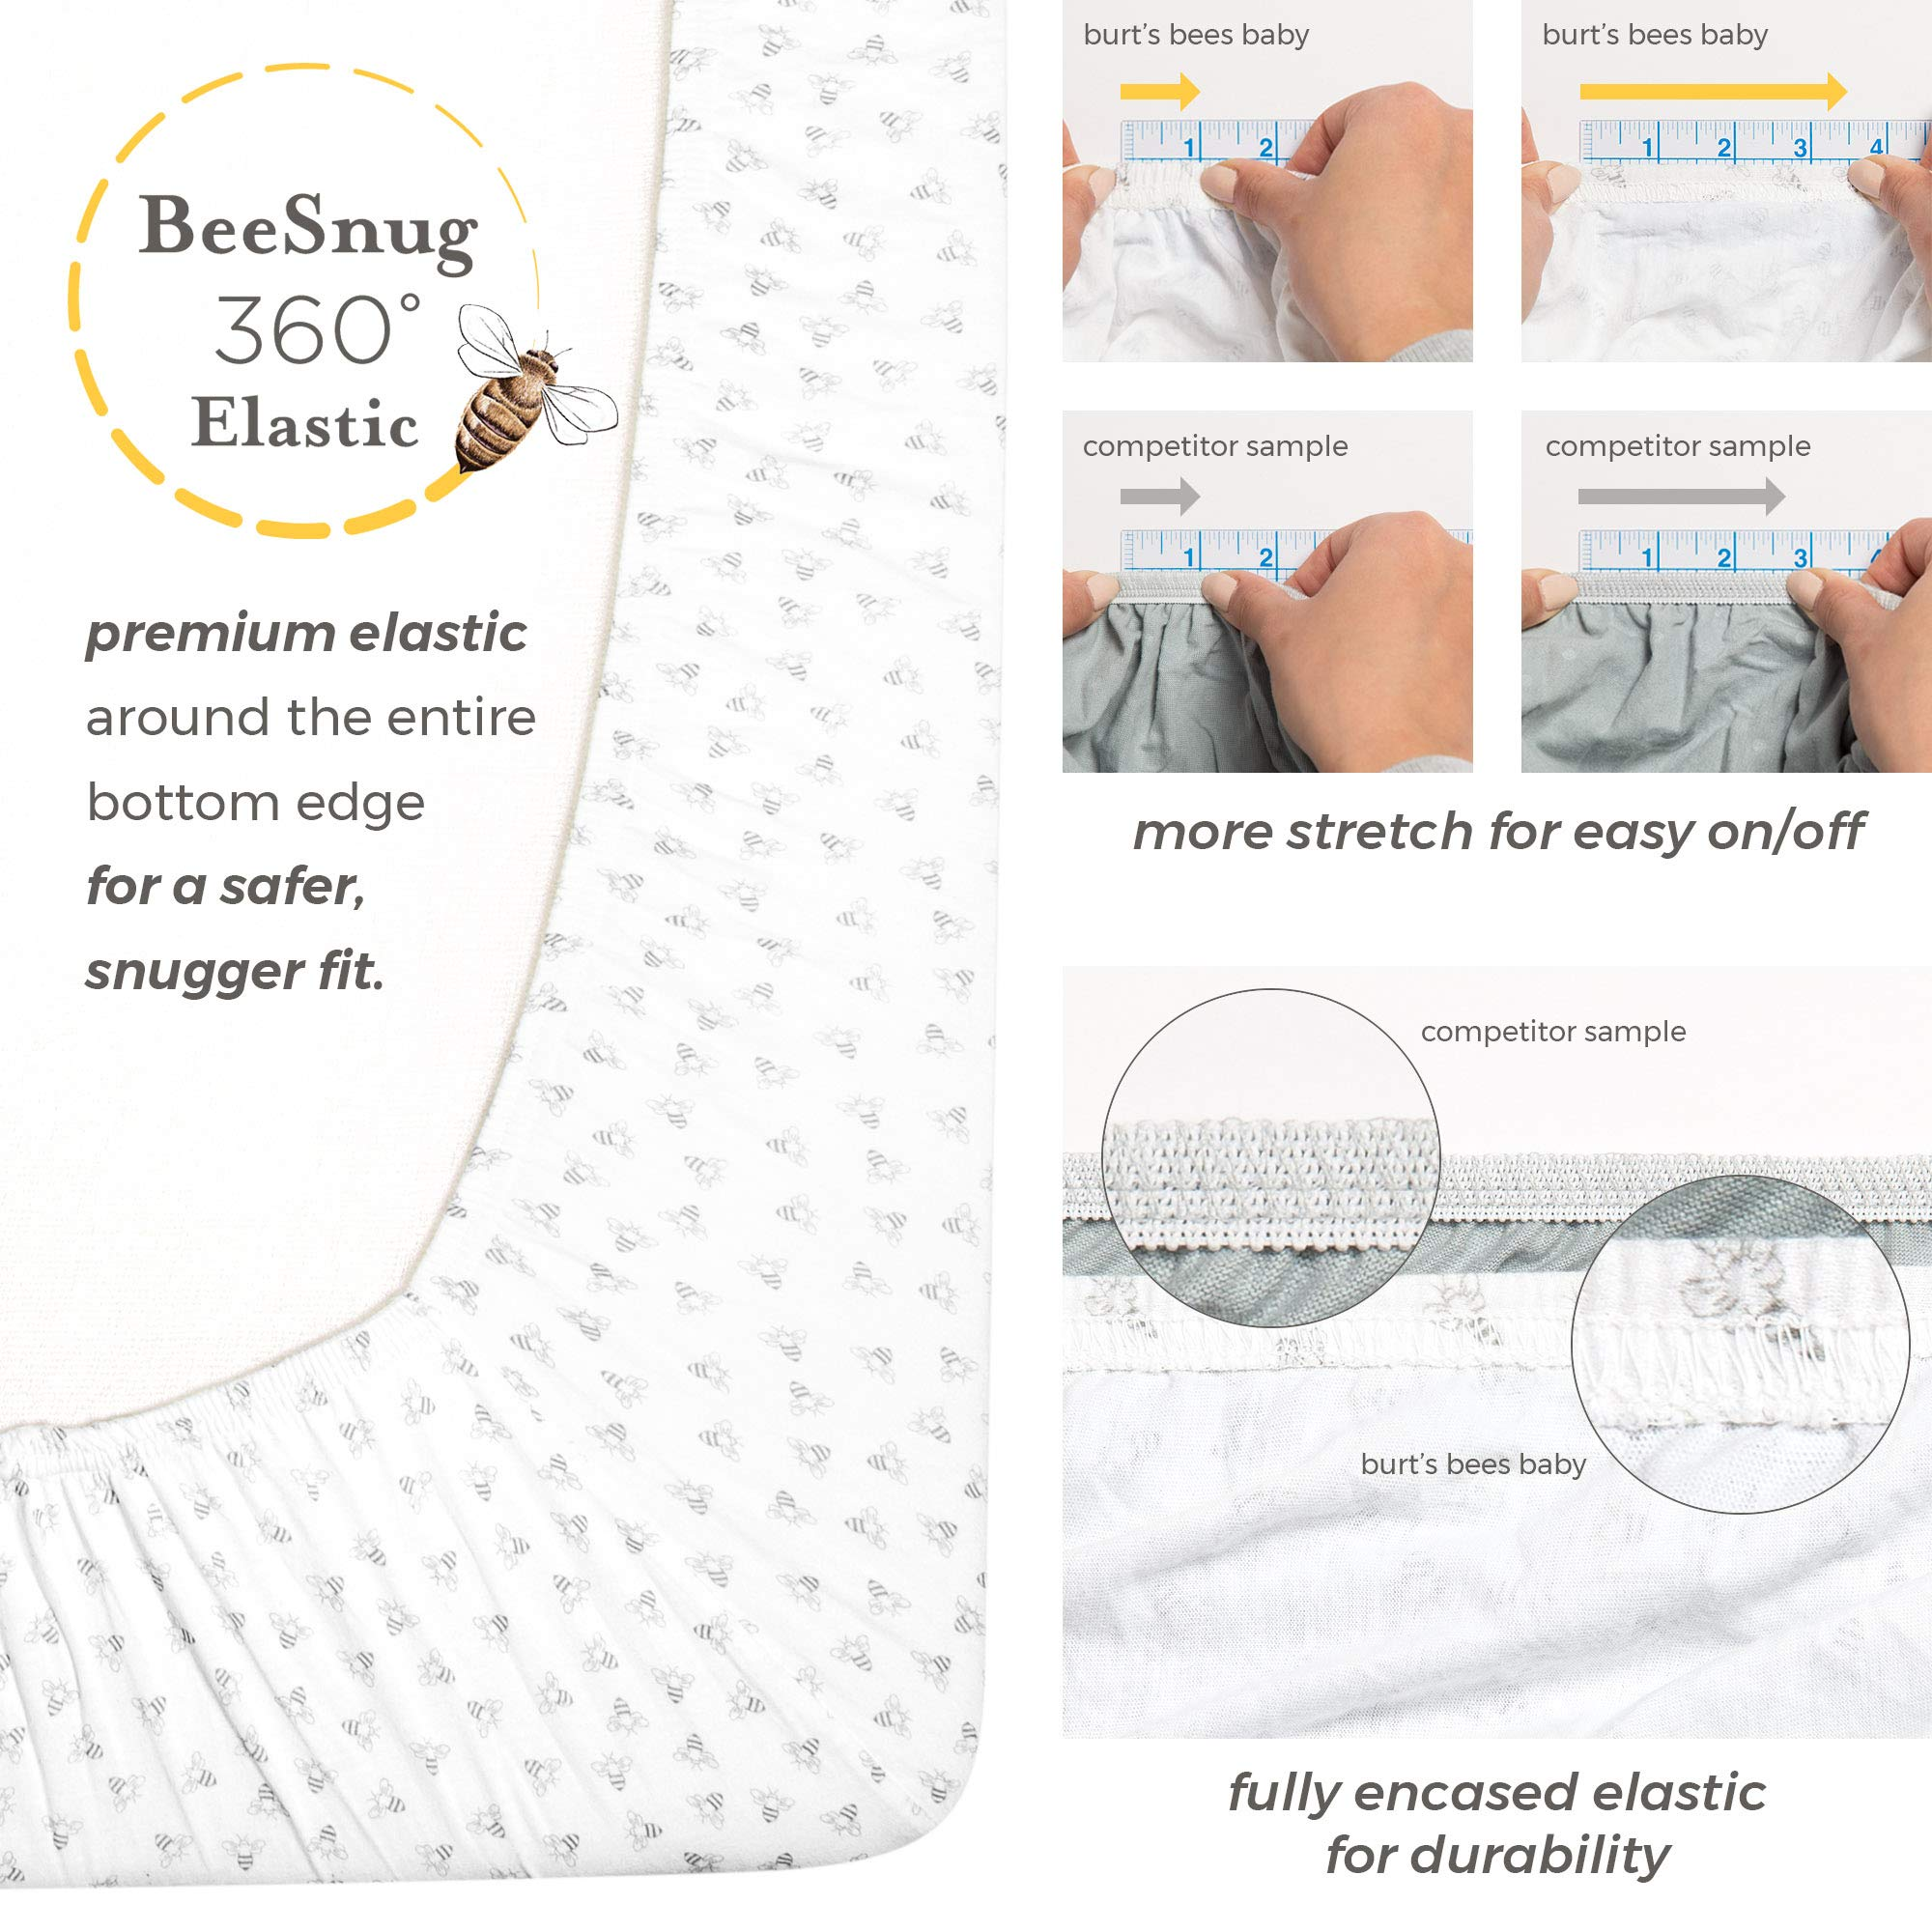 Burt's Bees Baby - Fitted Crib Sheets, 2-Pack, Boys & Unisex 100% Organic Cotton Crib Sheet for Standard Crib and Toddler Mattresses (Pine Forest) by Burt's Bees Baby (Image #5)